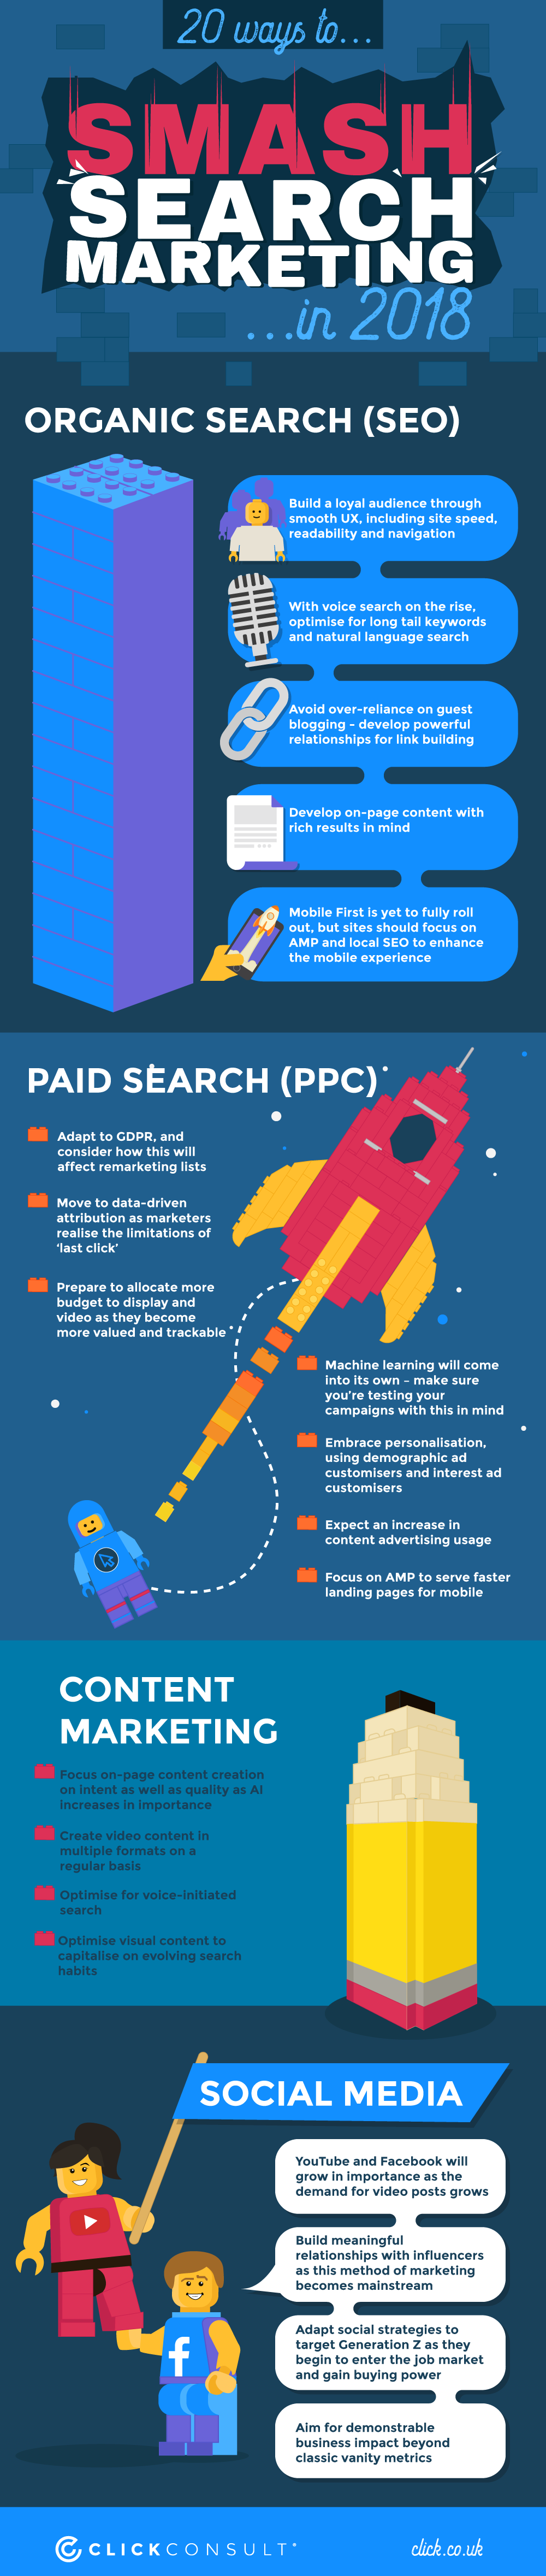 search marketing in 2018 infographic